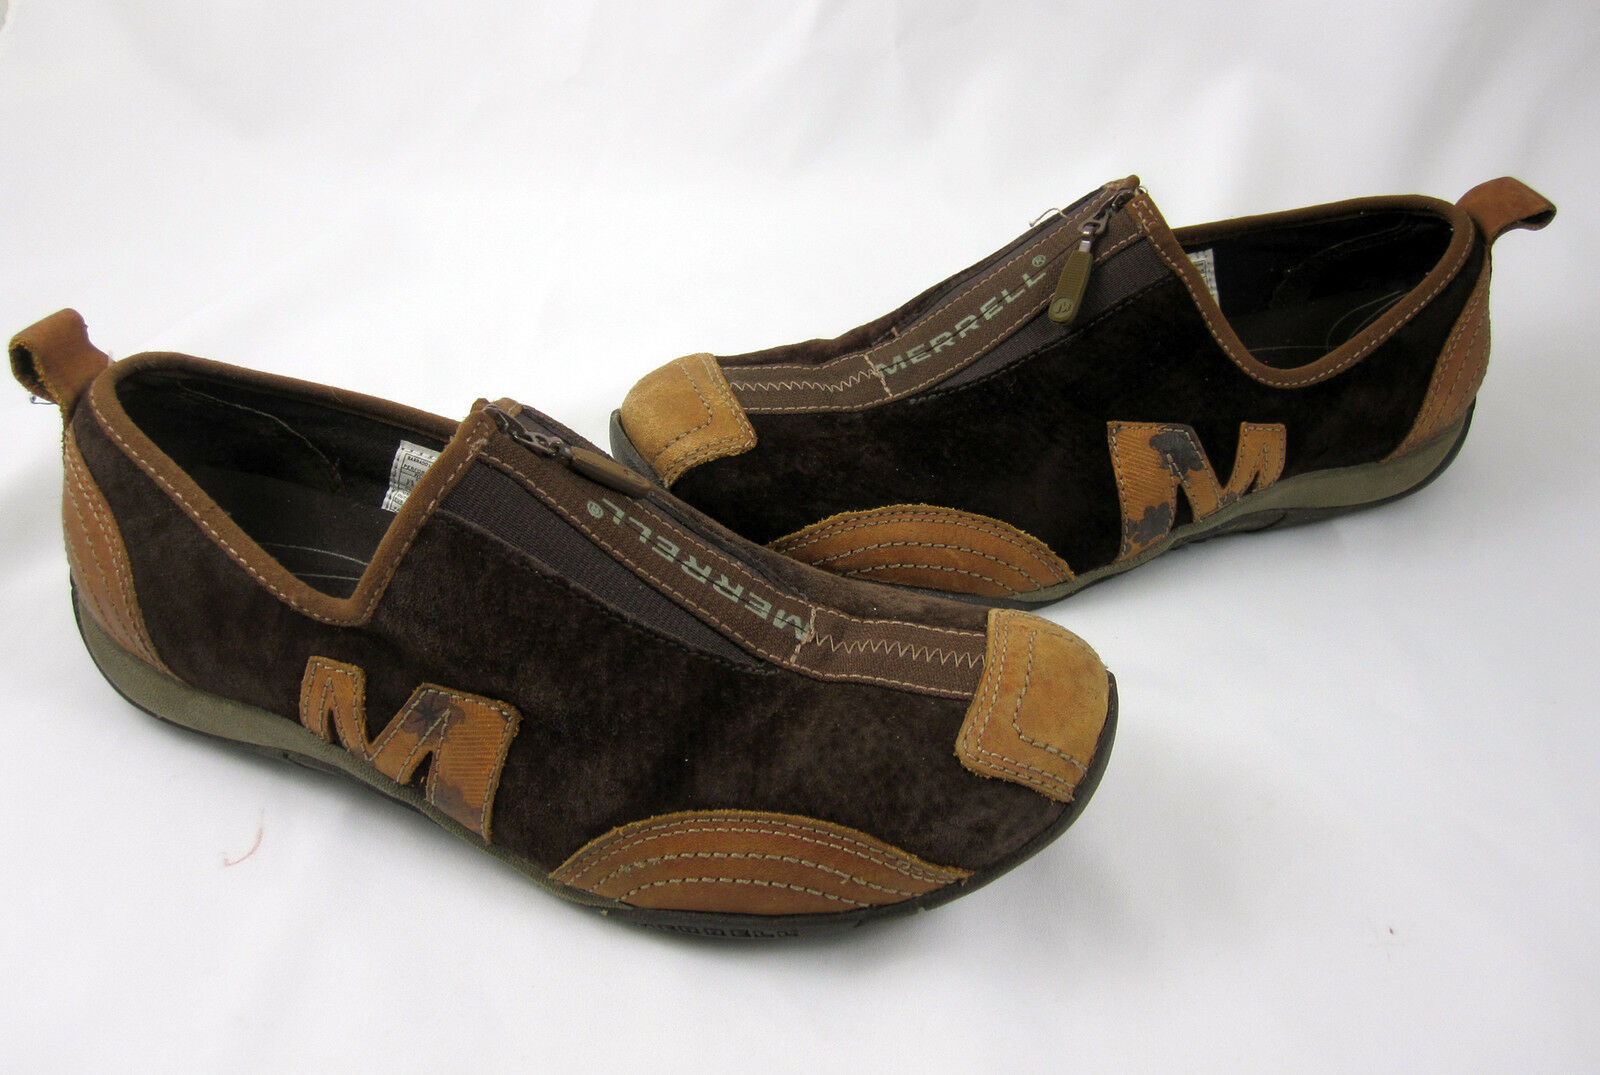 Merrell Performance Size 7.5 shoes Barrado Coffee Bean Suede Brown Leather